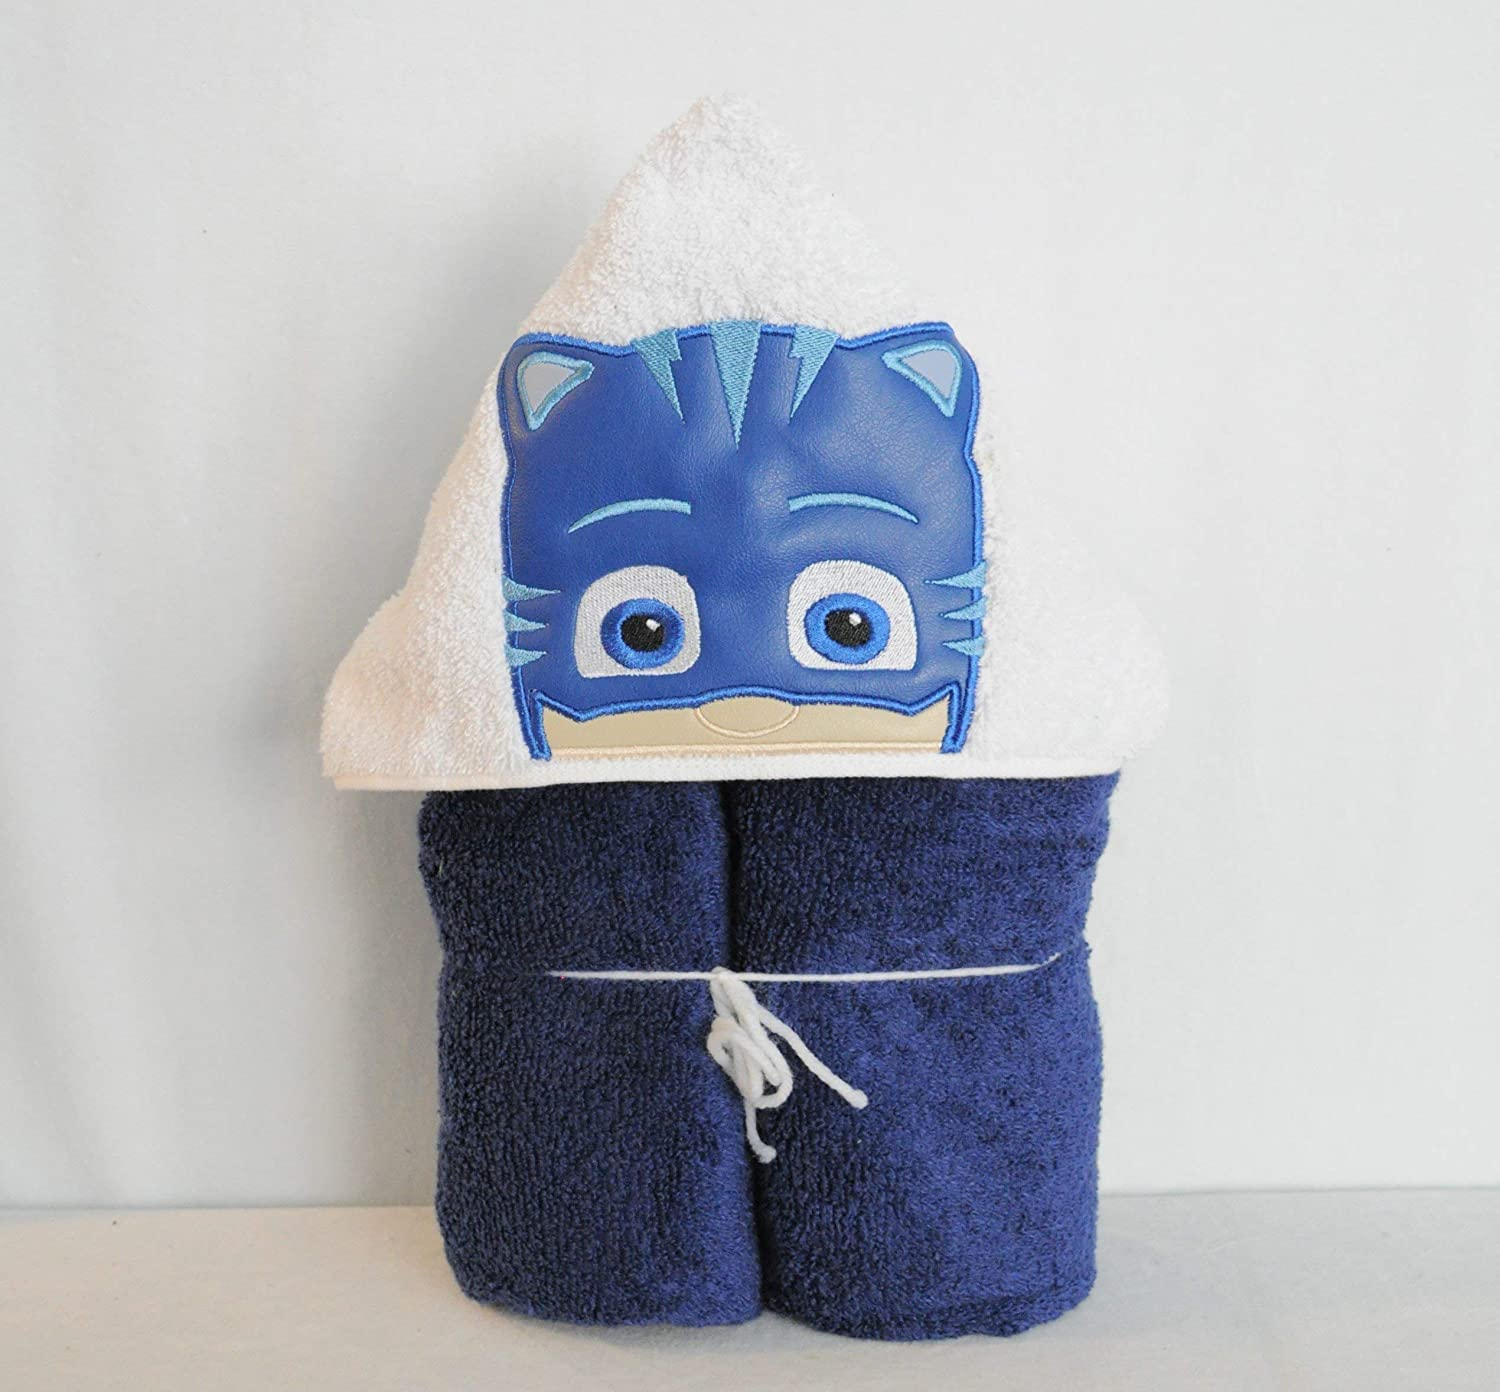 Blue Cat Bedtime Hero Hooded Bath Towel - Baby, Child, Tween